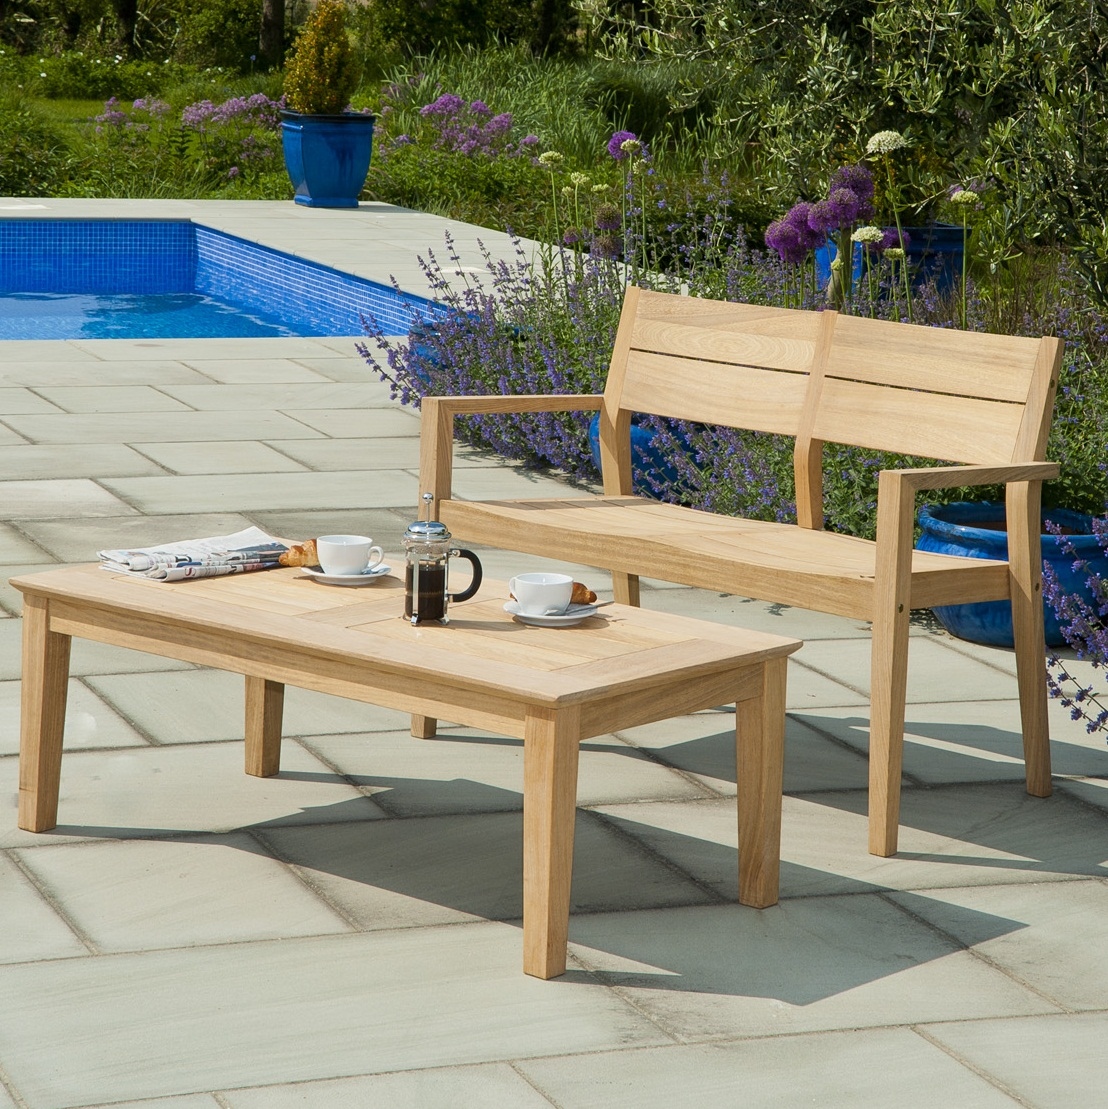 https://www.firstfurniture.co.uk/pub/media/catalog/product/1/5/152_155_76605_zoom.jpg